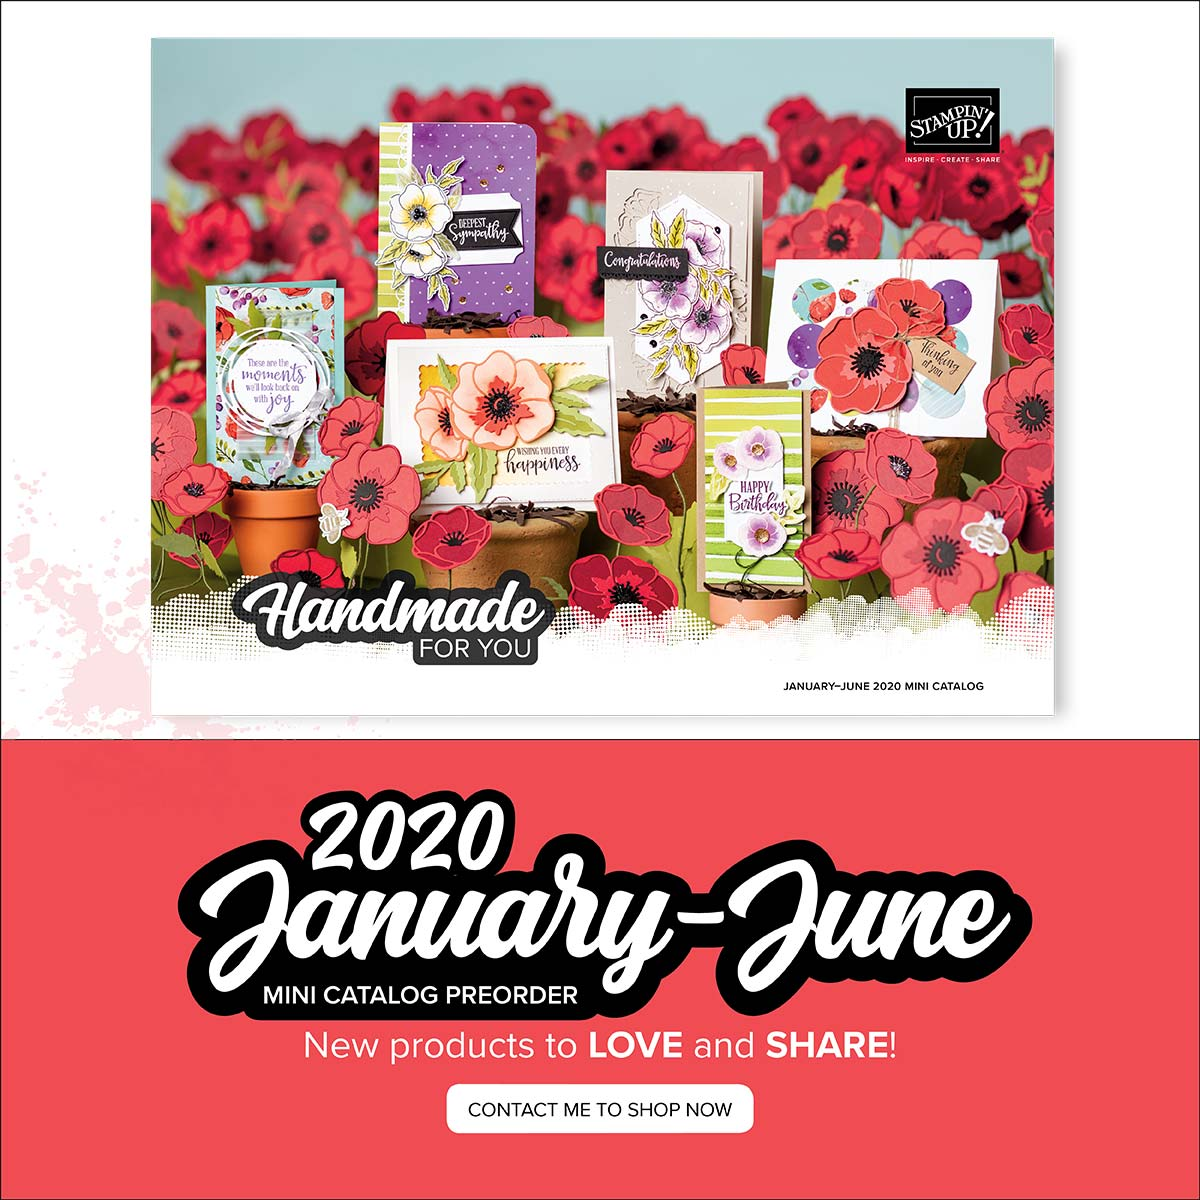 The Stampin' Up! New Mini catalog will begin on January 3, 2020. See my blog here for details: https://wp.me/p59VWq-aF6